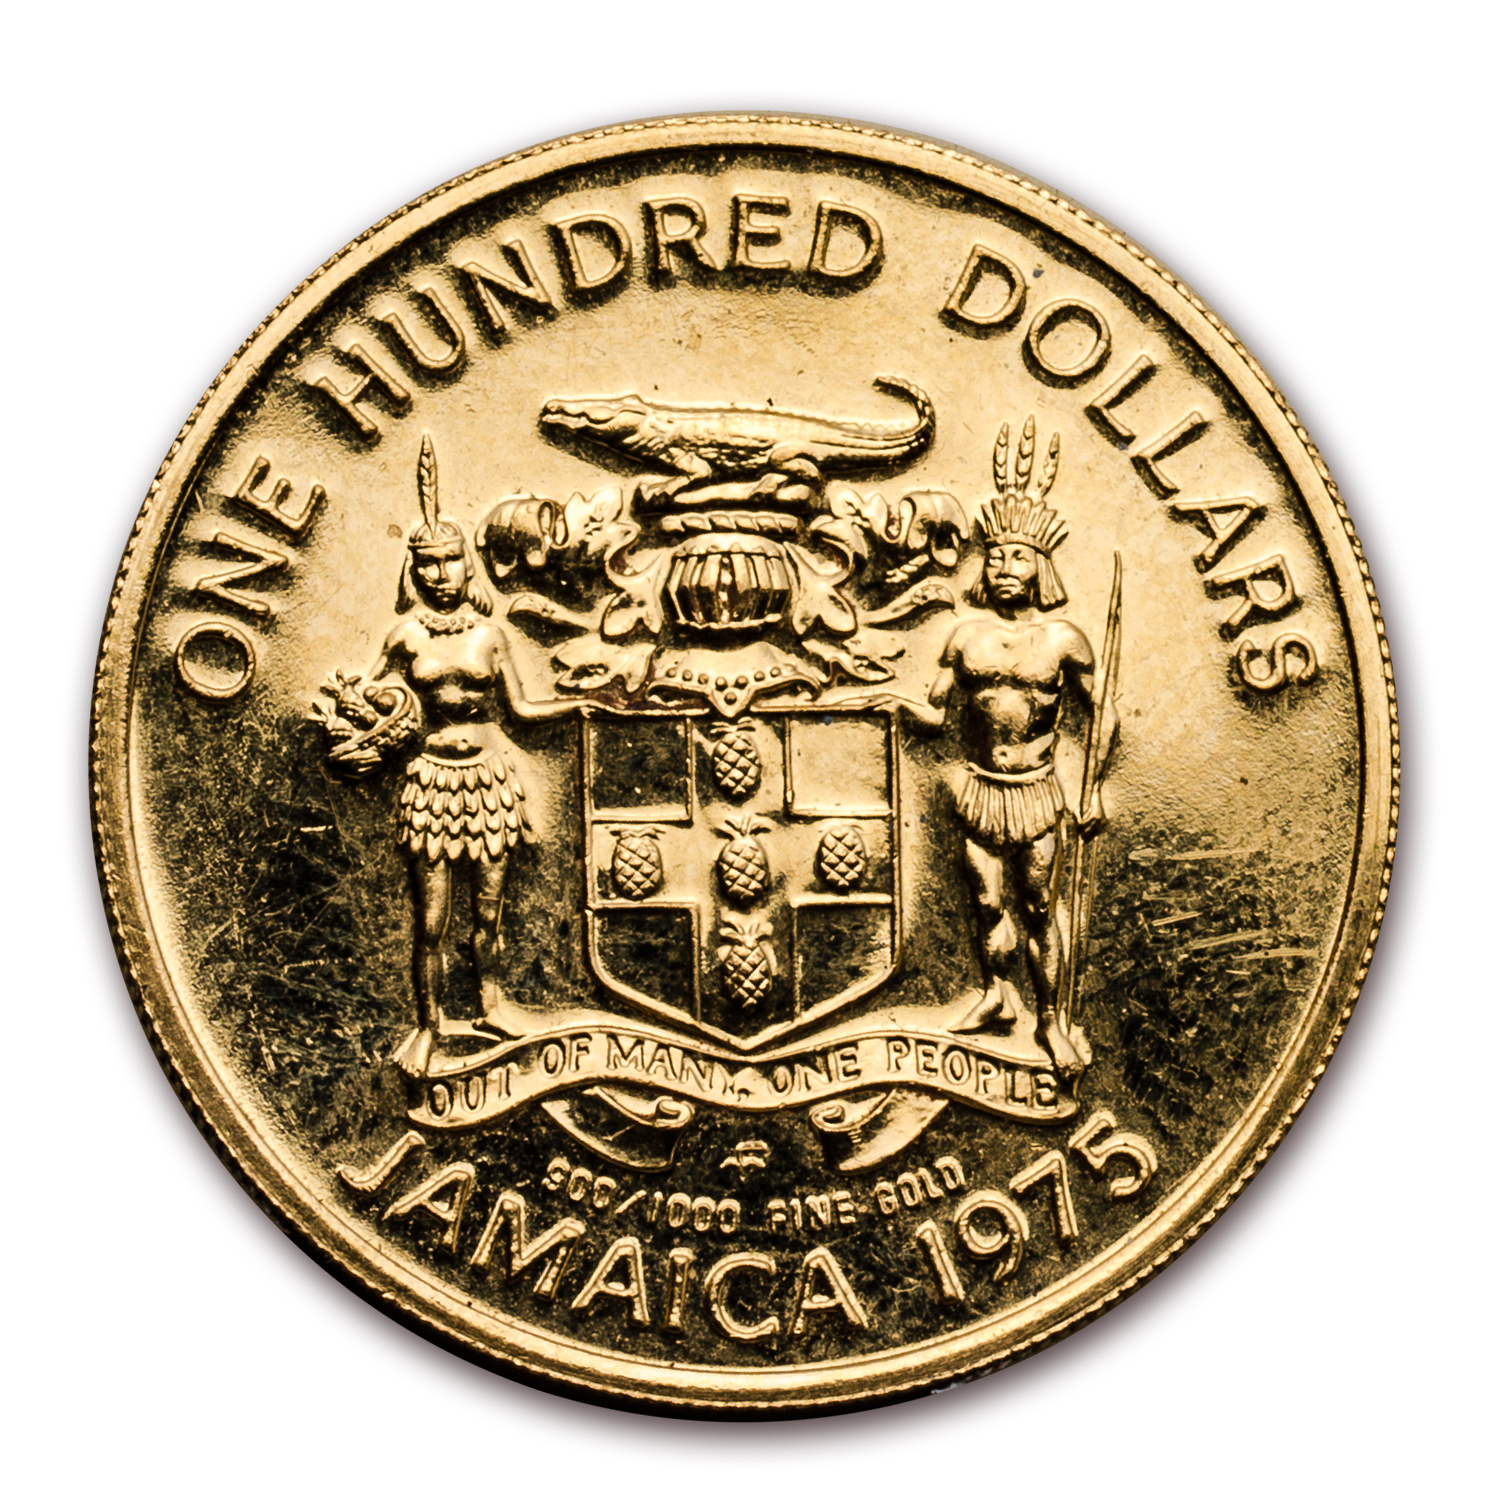 1975 Jamaica Gold 100 Dollars - Columbus Scruffy